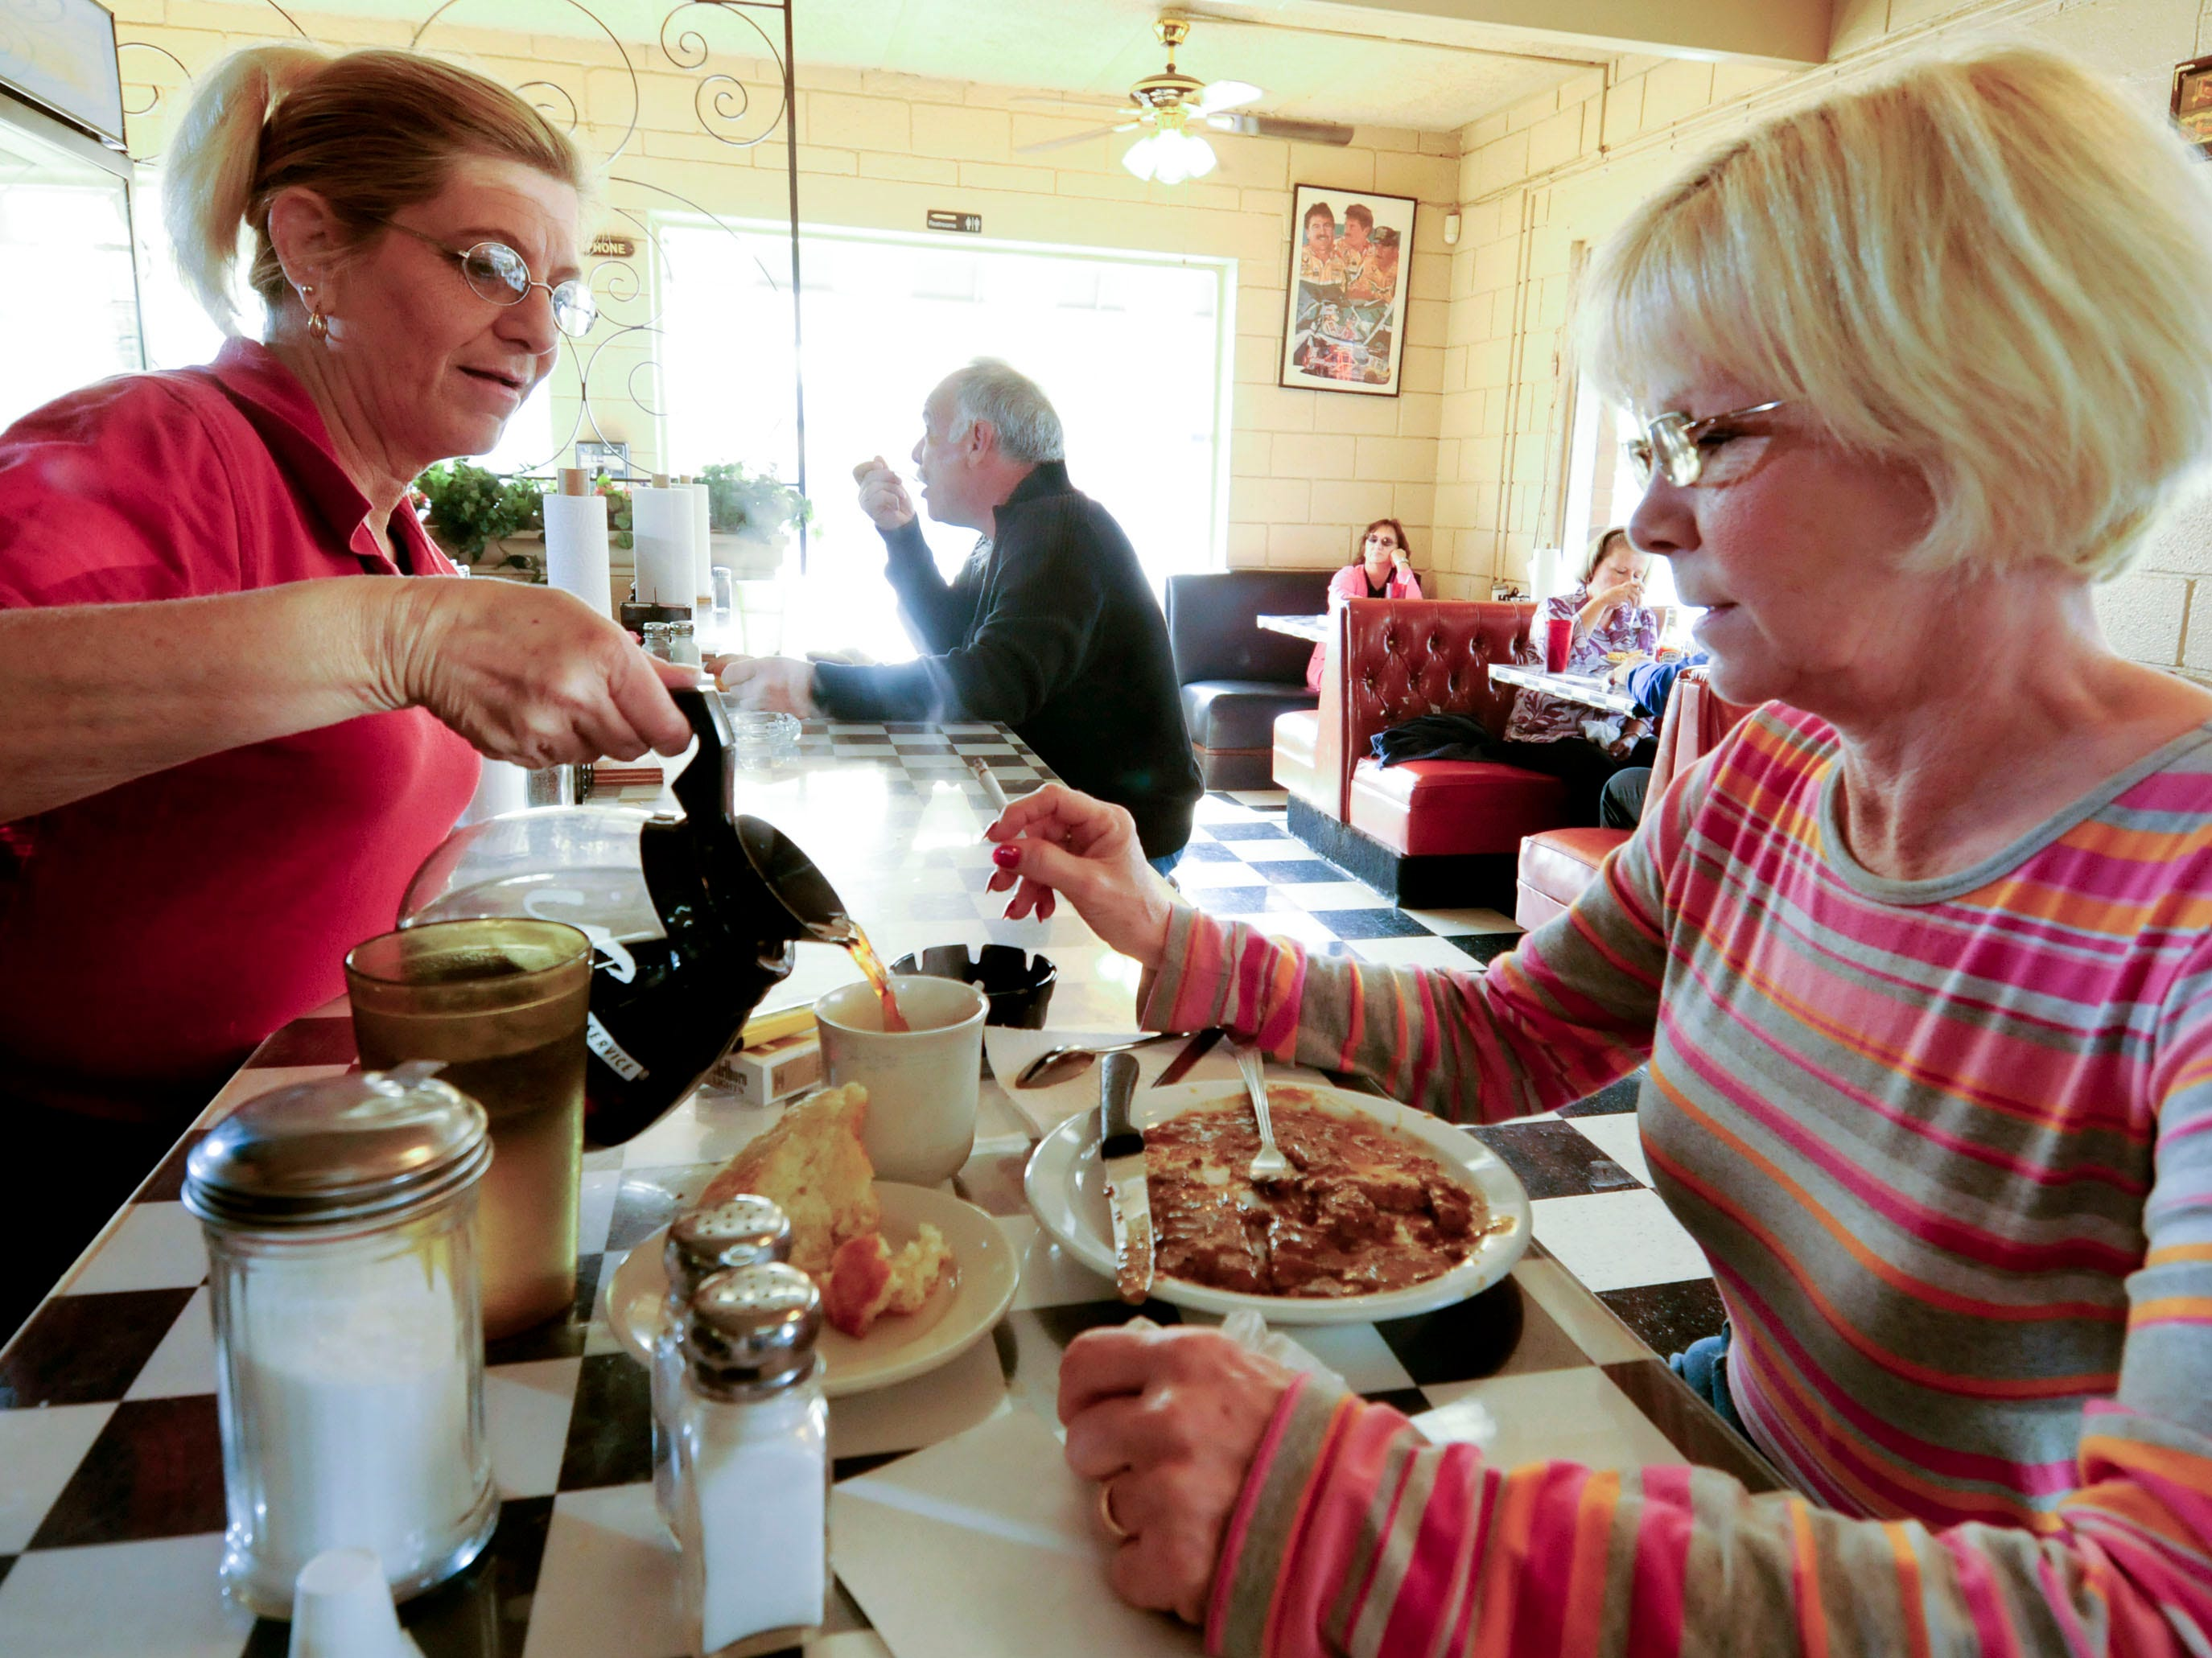 It's been a year since Tennessee outlawed smoking in restaurants and West Haven Restaurant is doing better business after the law. Customer Penny Howe, right, enjoys a cigarette with coffee served by Pattie Smith in 2008.